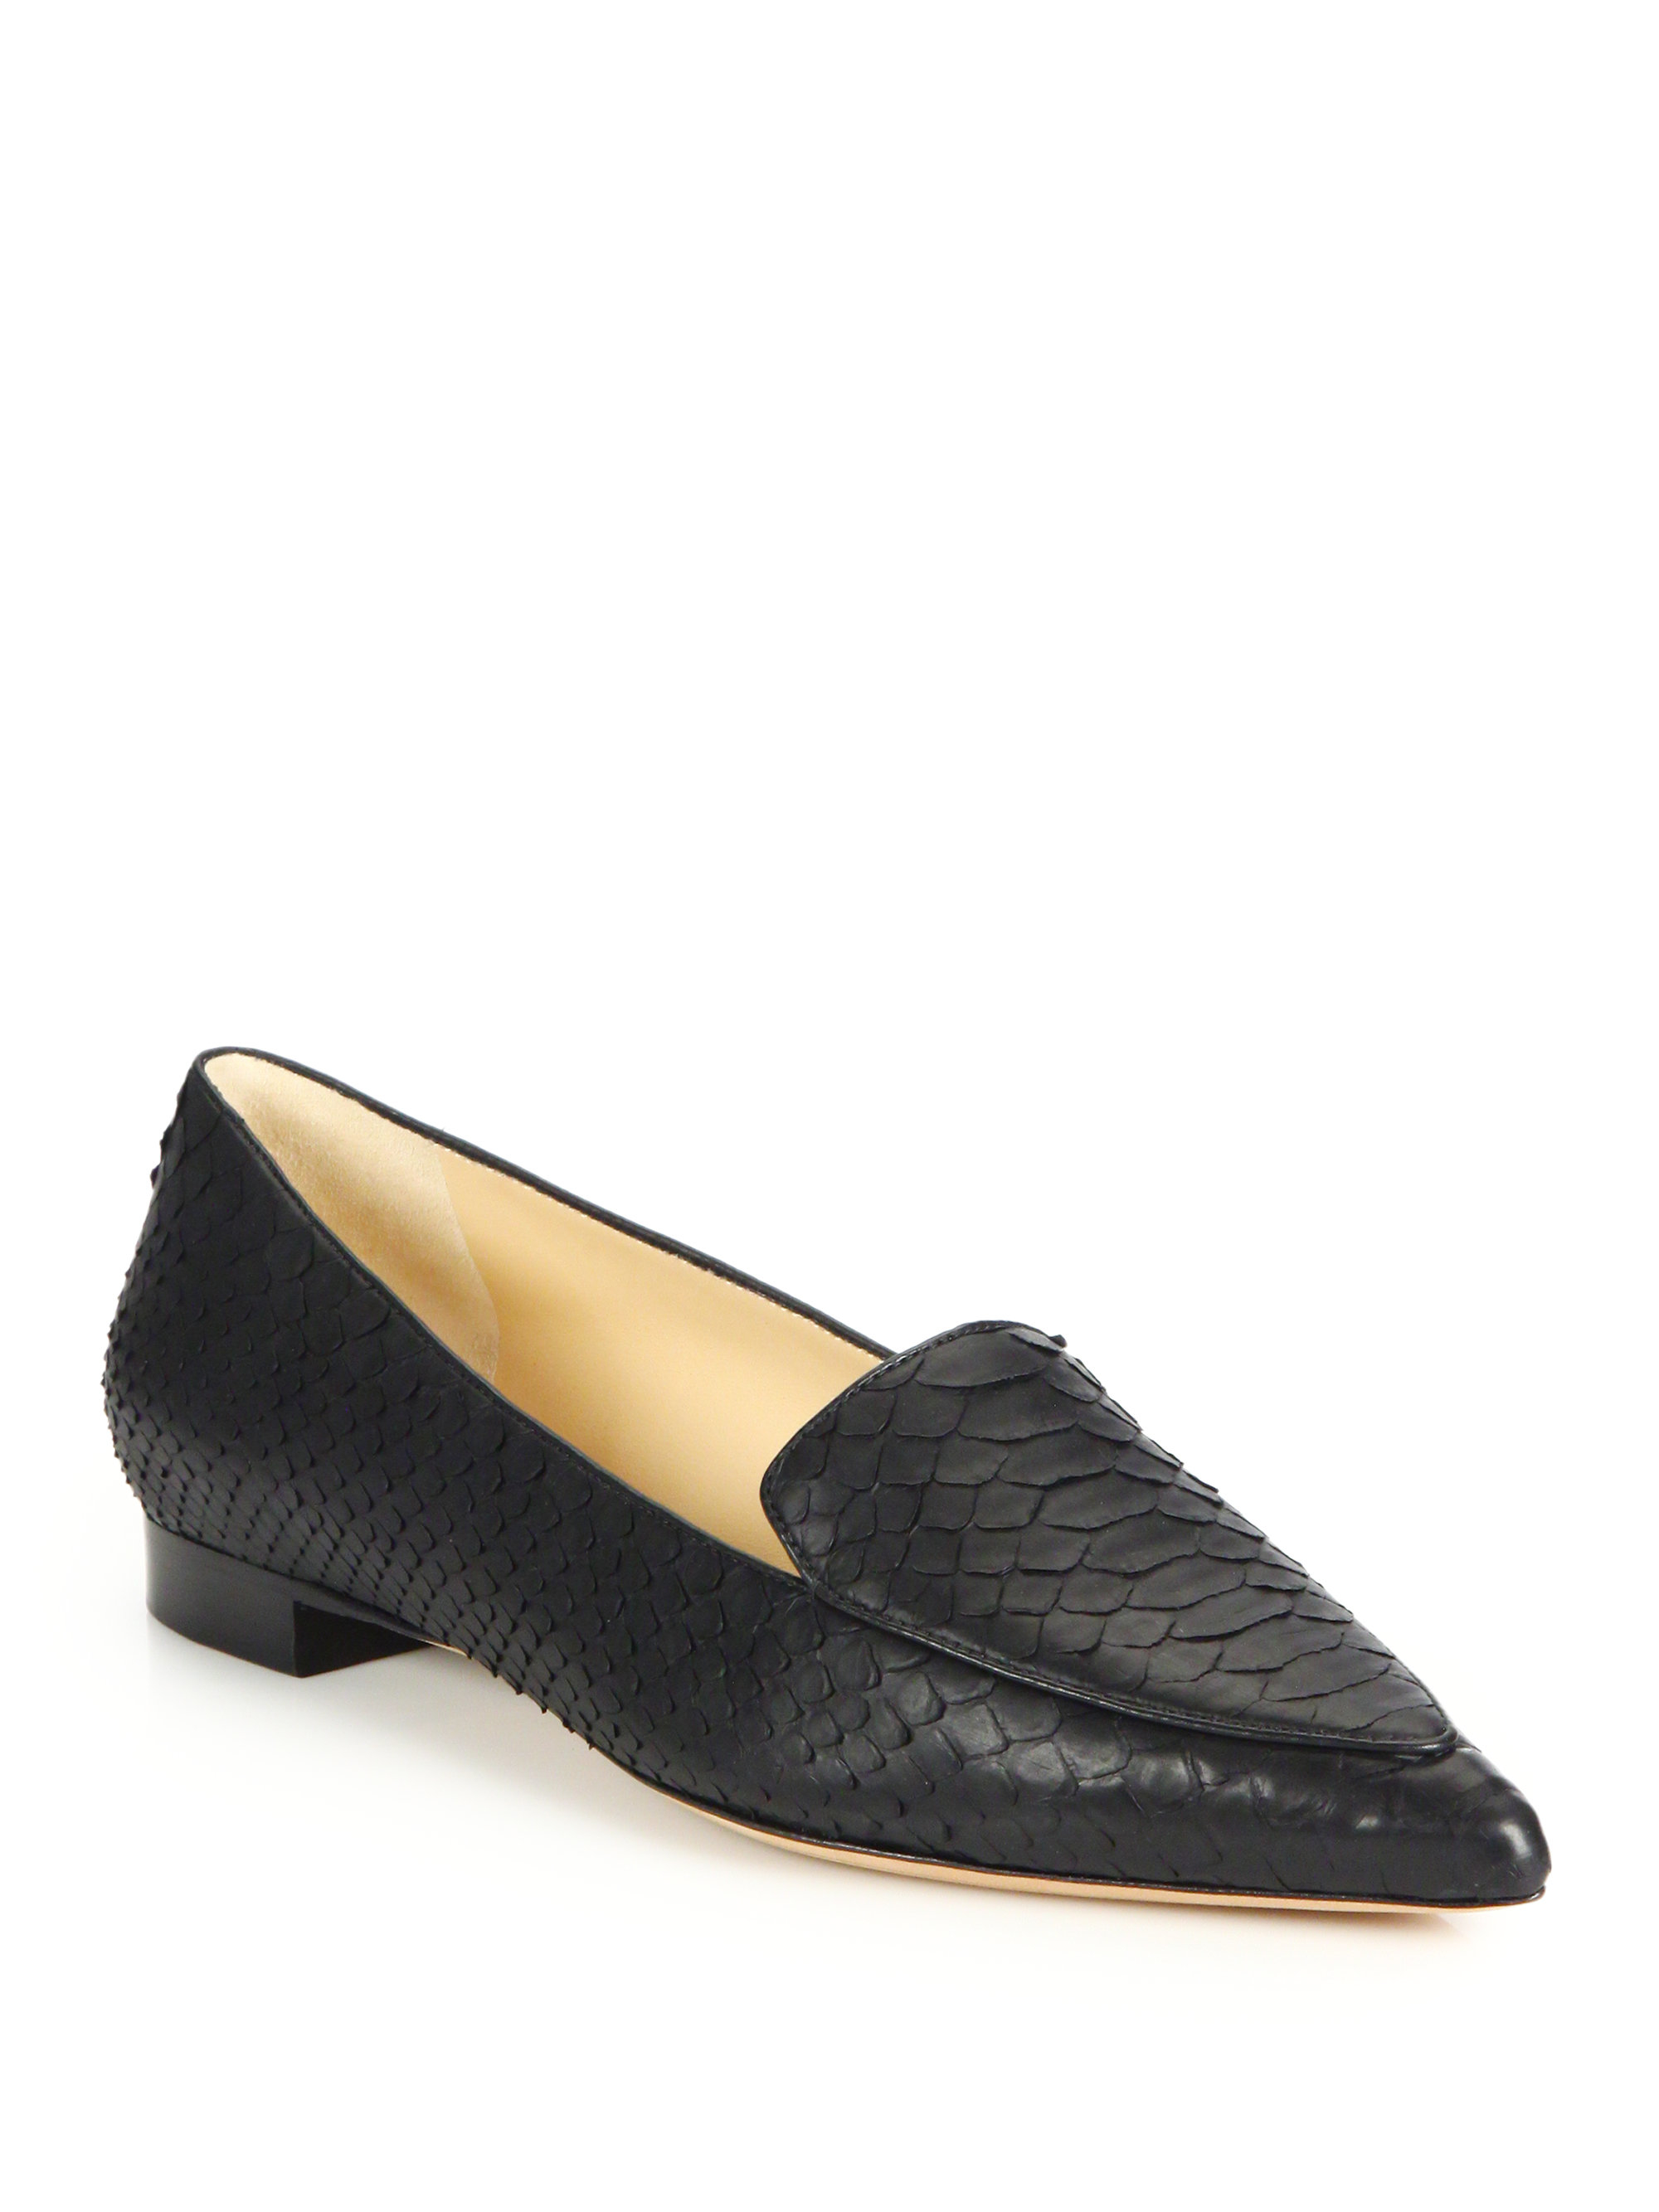 ALEXANDRE BIRMAN Loafers cheap 100% authentic wholesale price buy cheap outlet store free shipping recommend MkS6ASG07